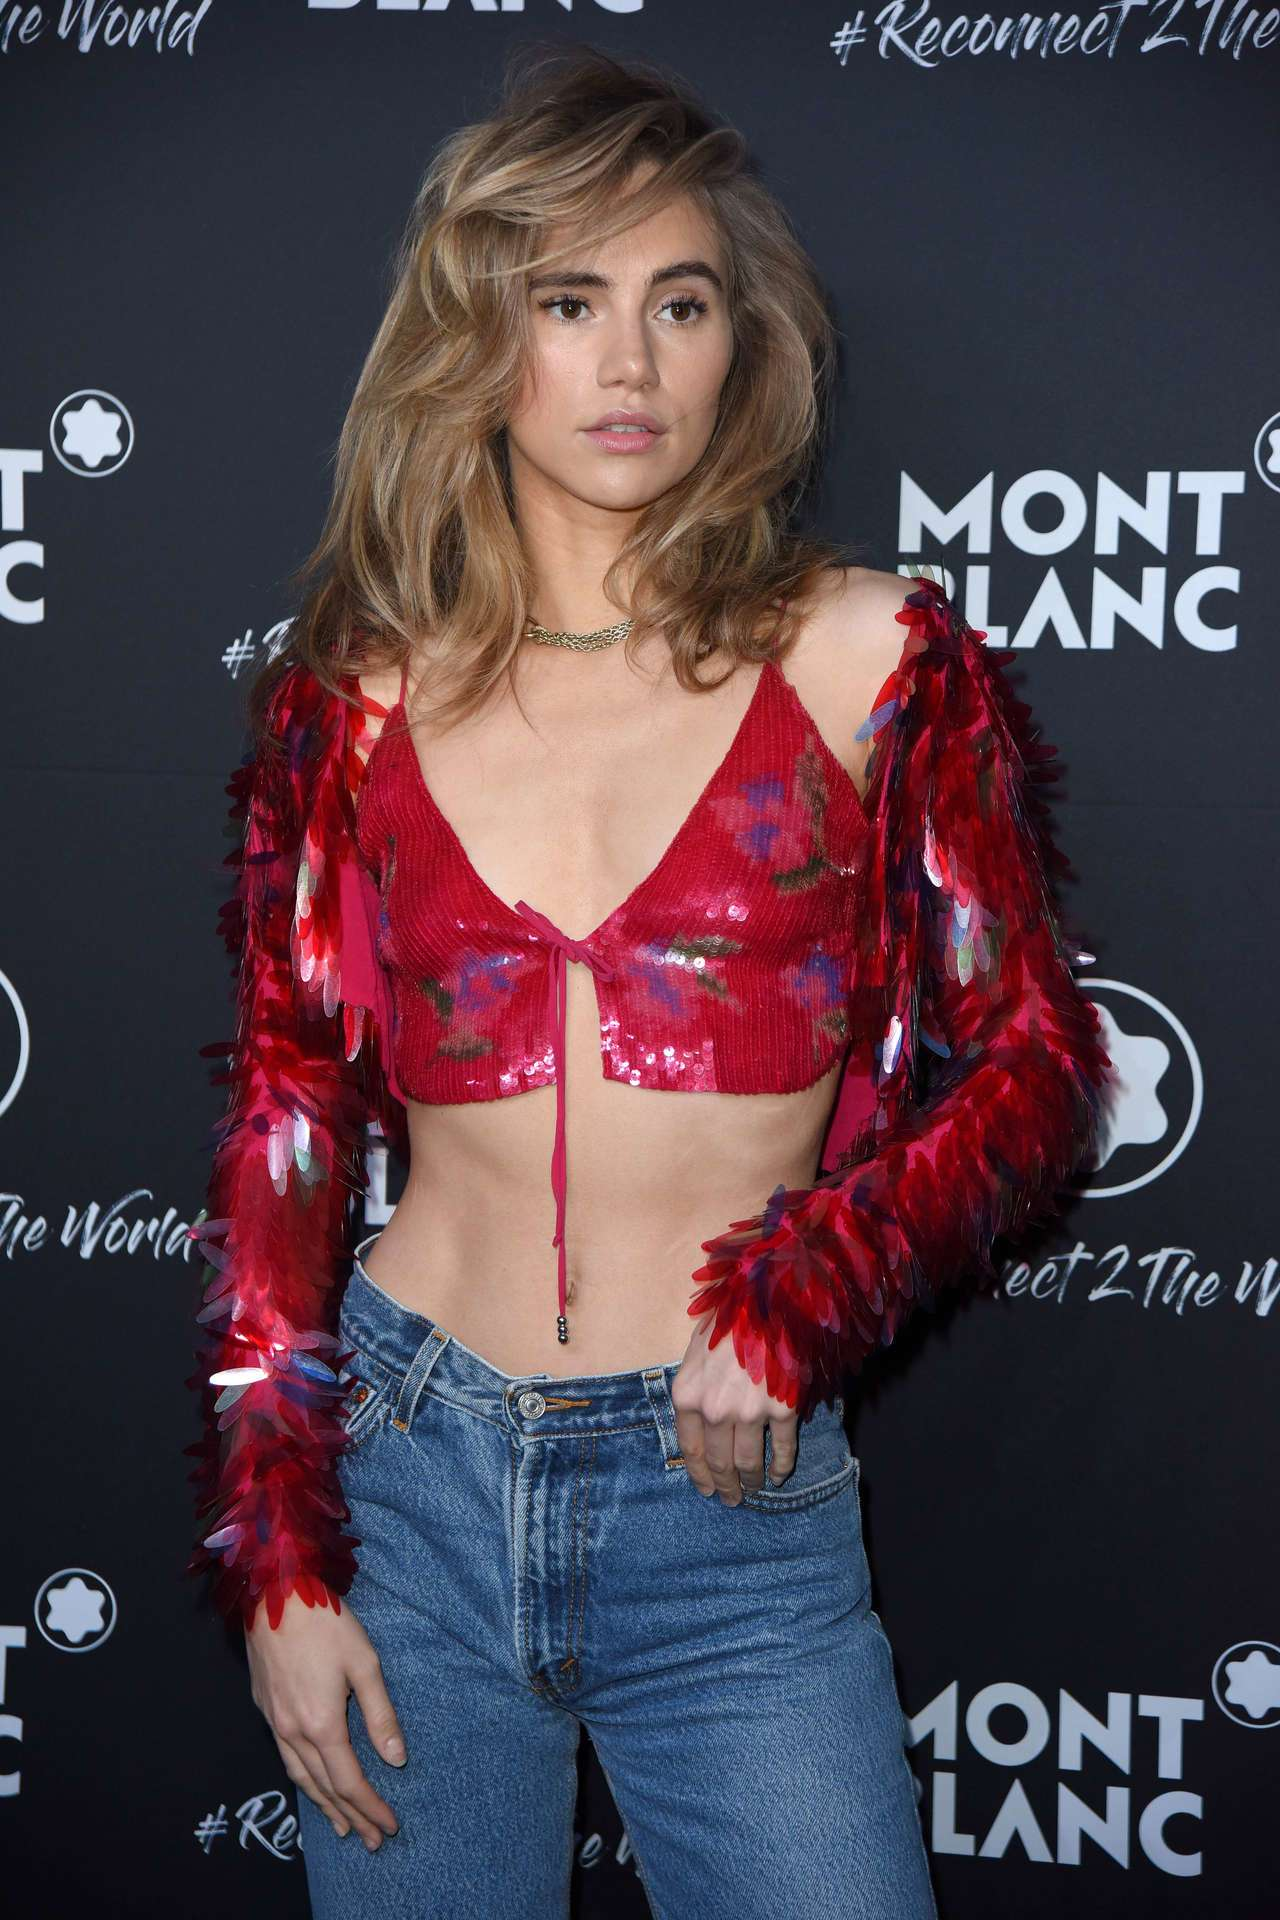 Suki Waterhouse - Montblanc #Reconnect 2 The World Party in Berlin